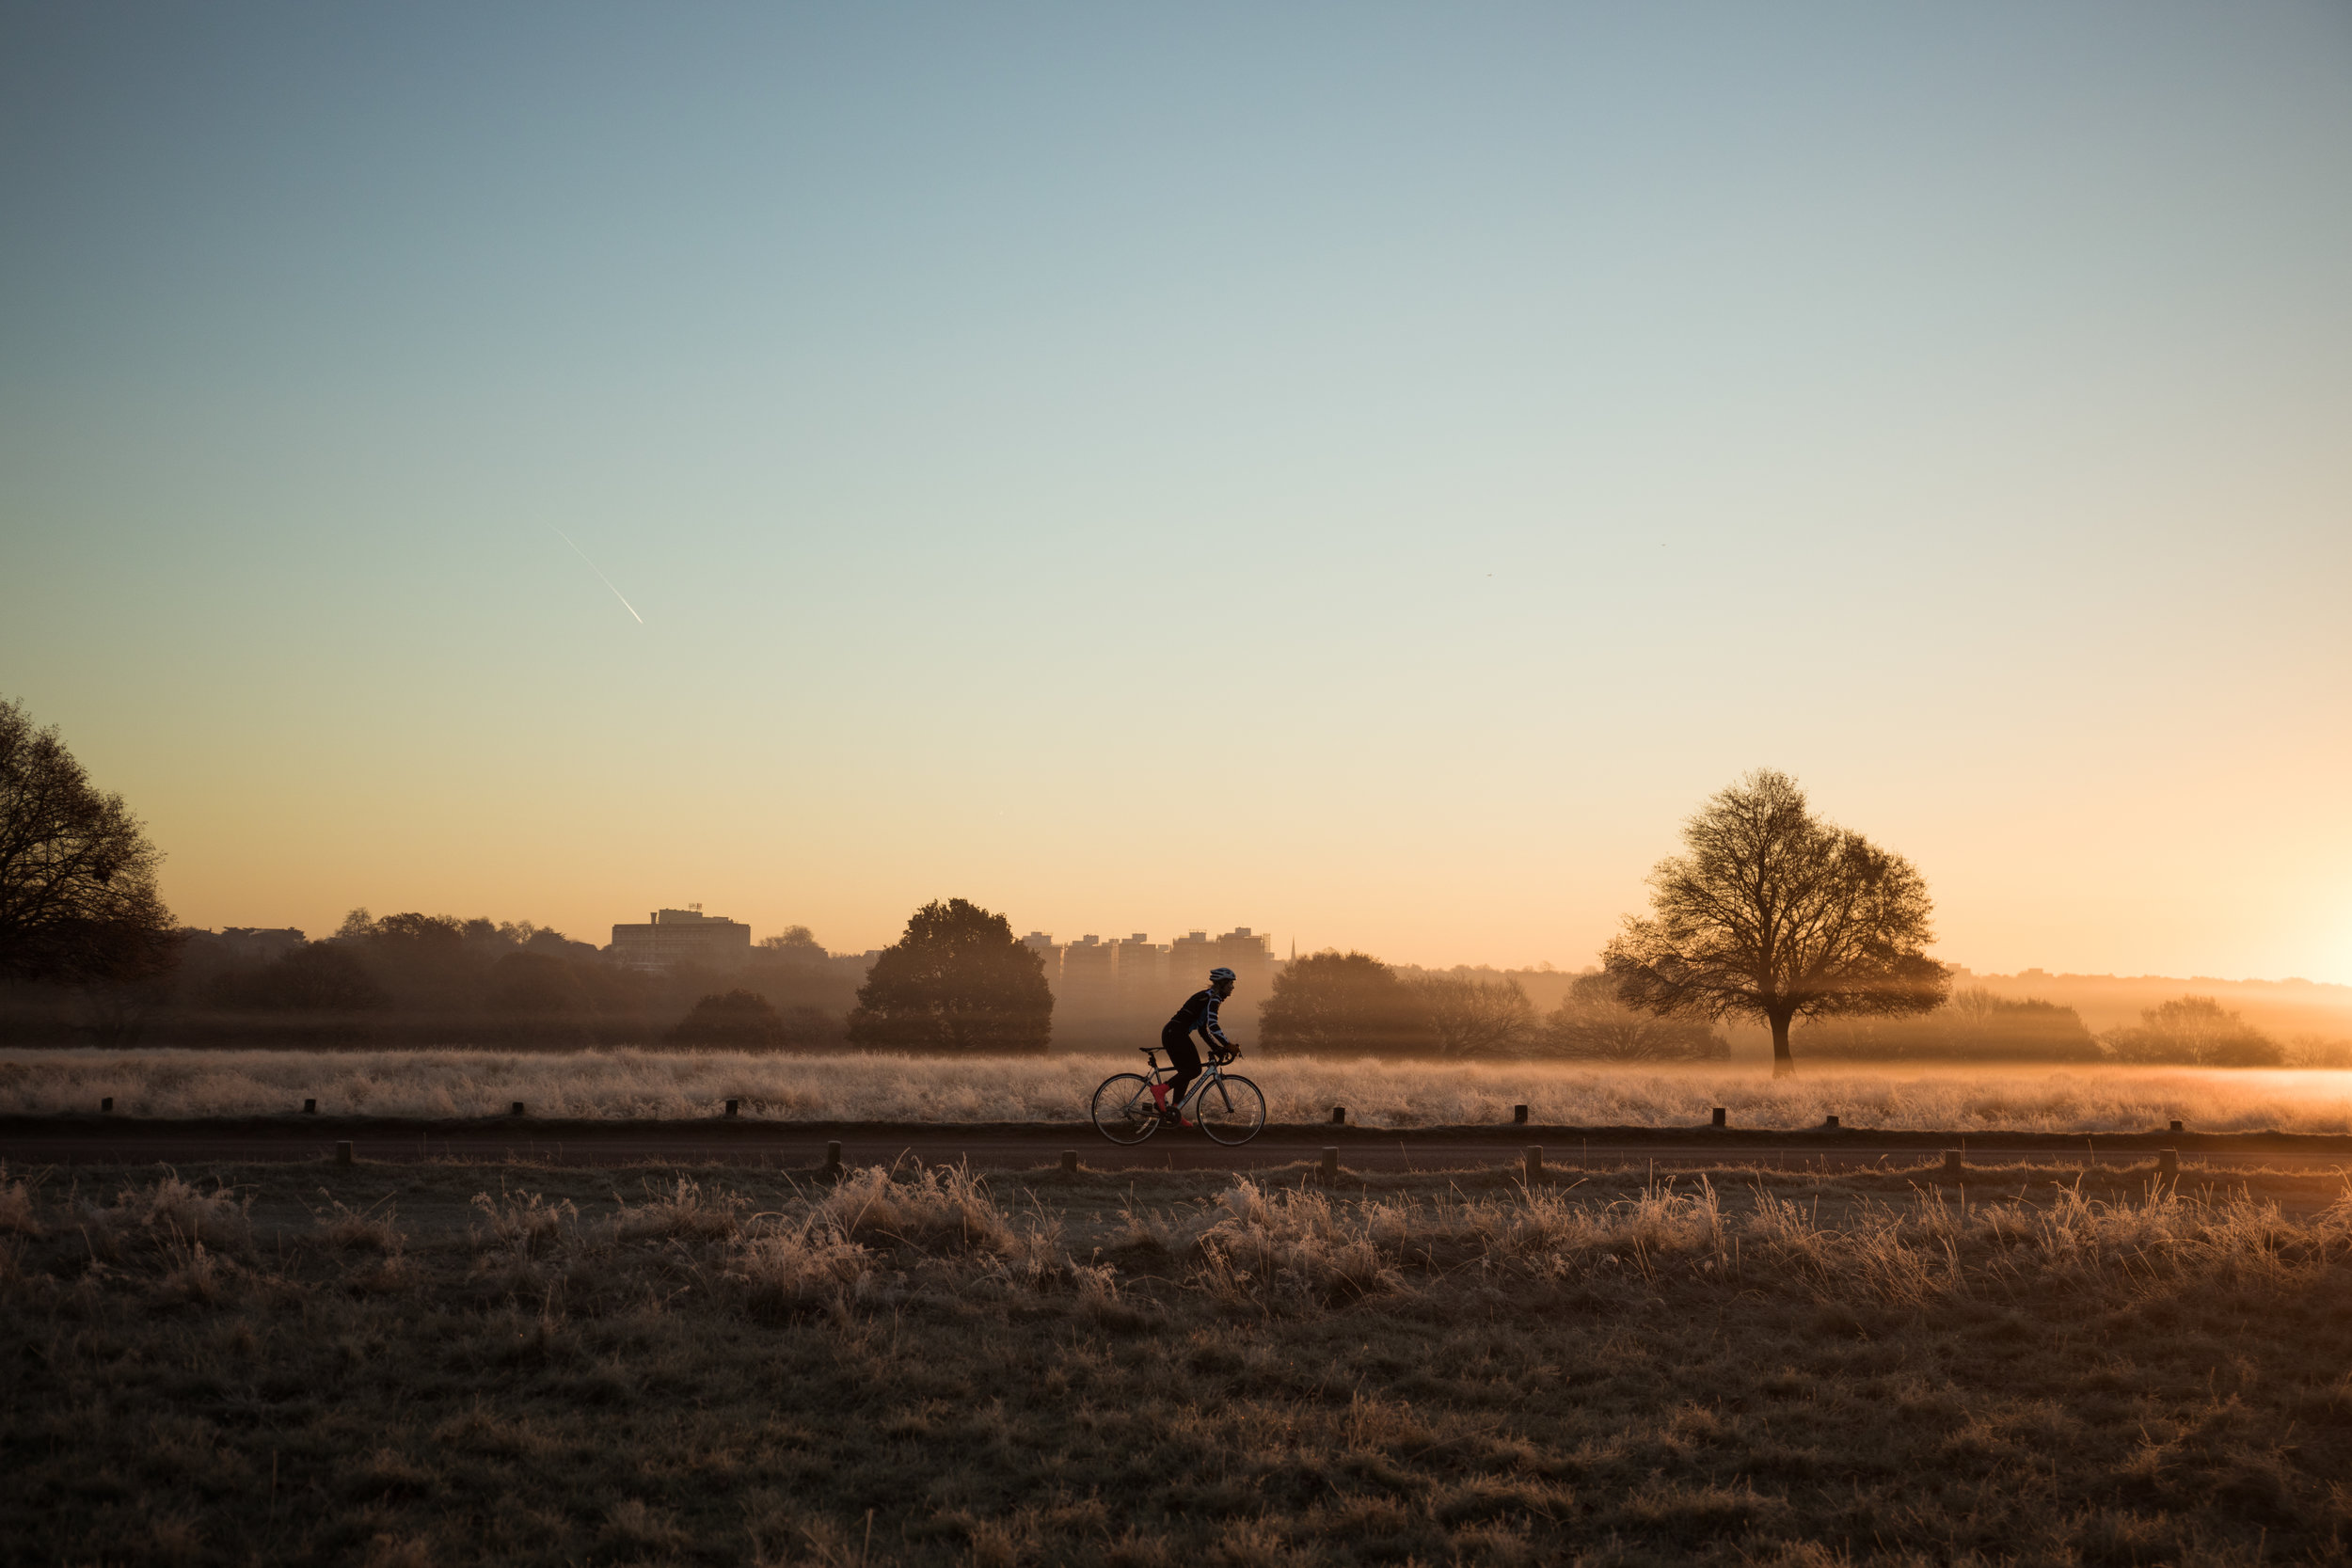 sunrise cycle, sophie radcliffe, january motivation